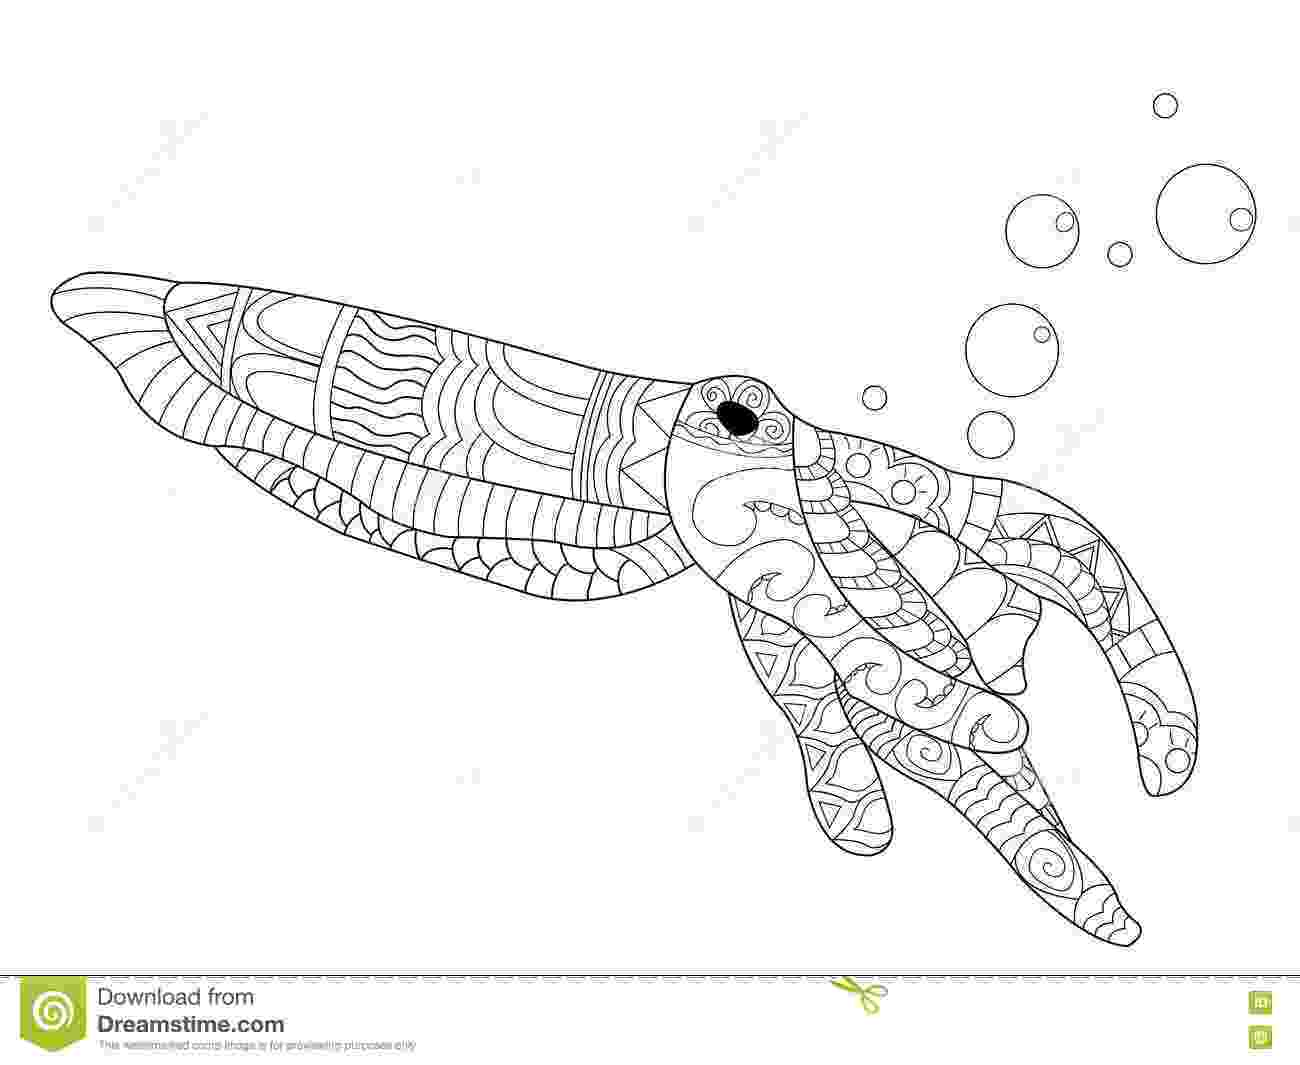 cuttlefish coloring pages items similar to cephalopods a coloring book of octopus coloring pages cuttlefish